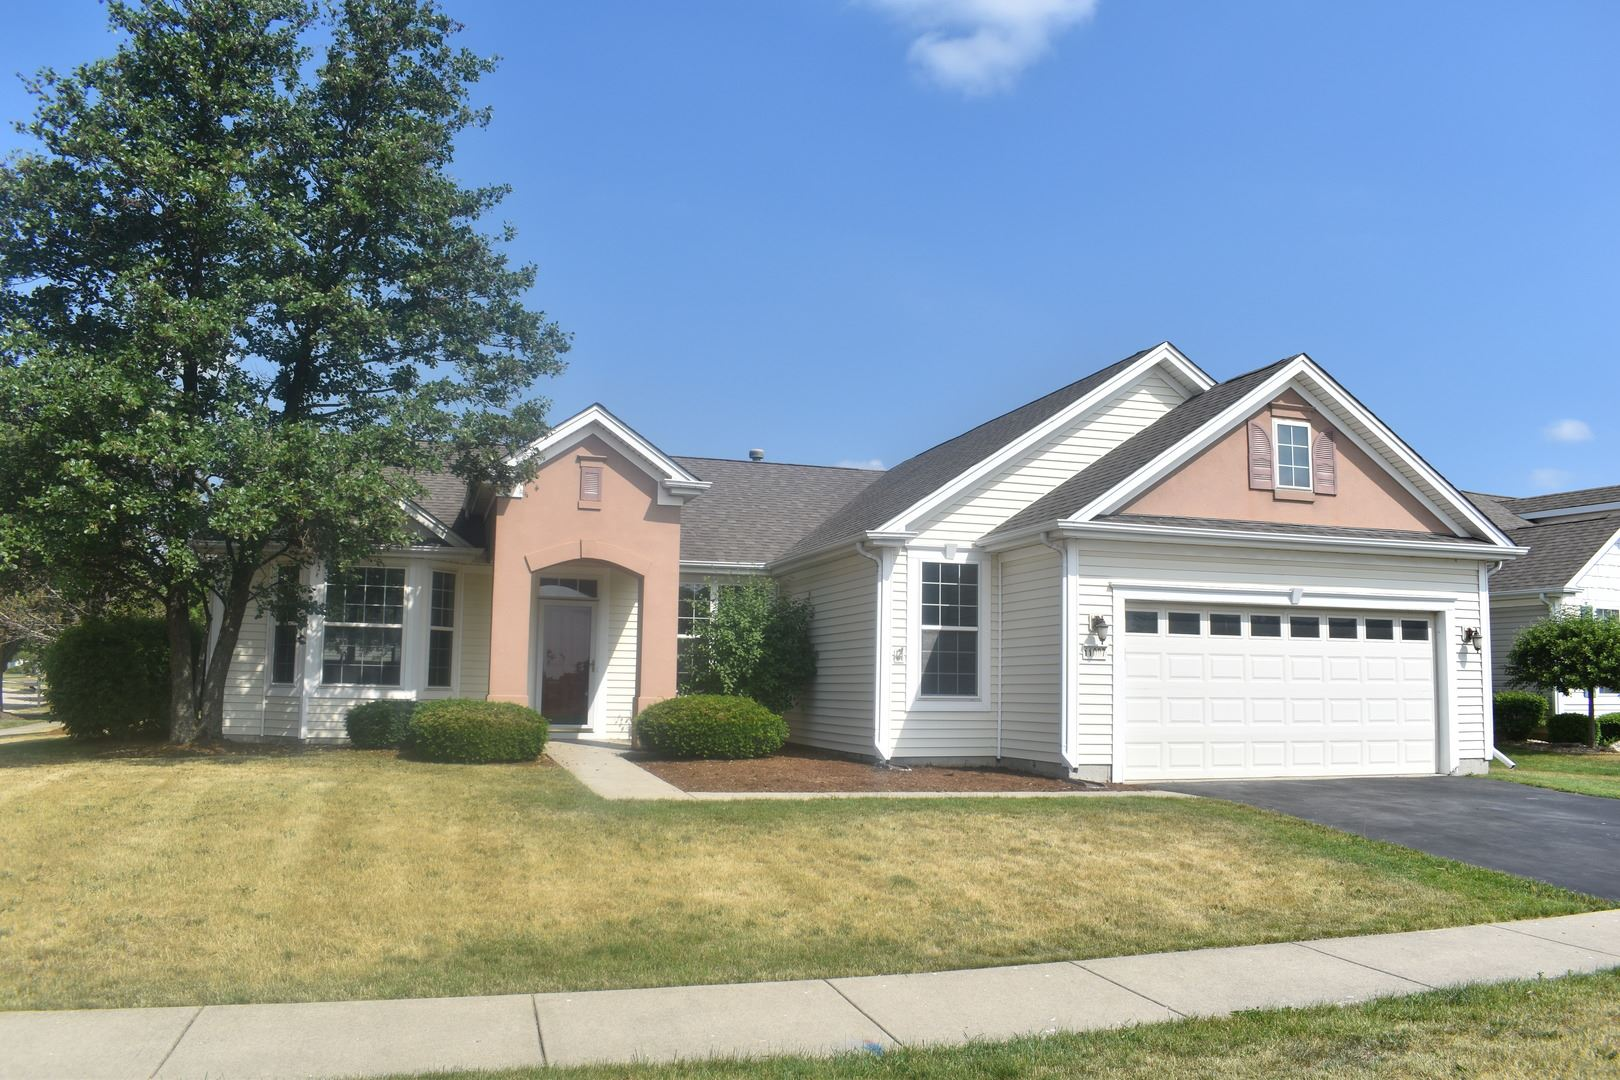 11997 Stonewater Crossing, Huntley, IL 60142 - #: 11116484